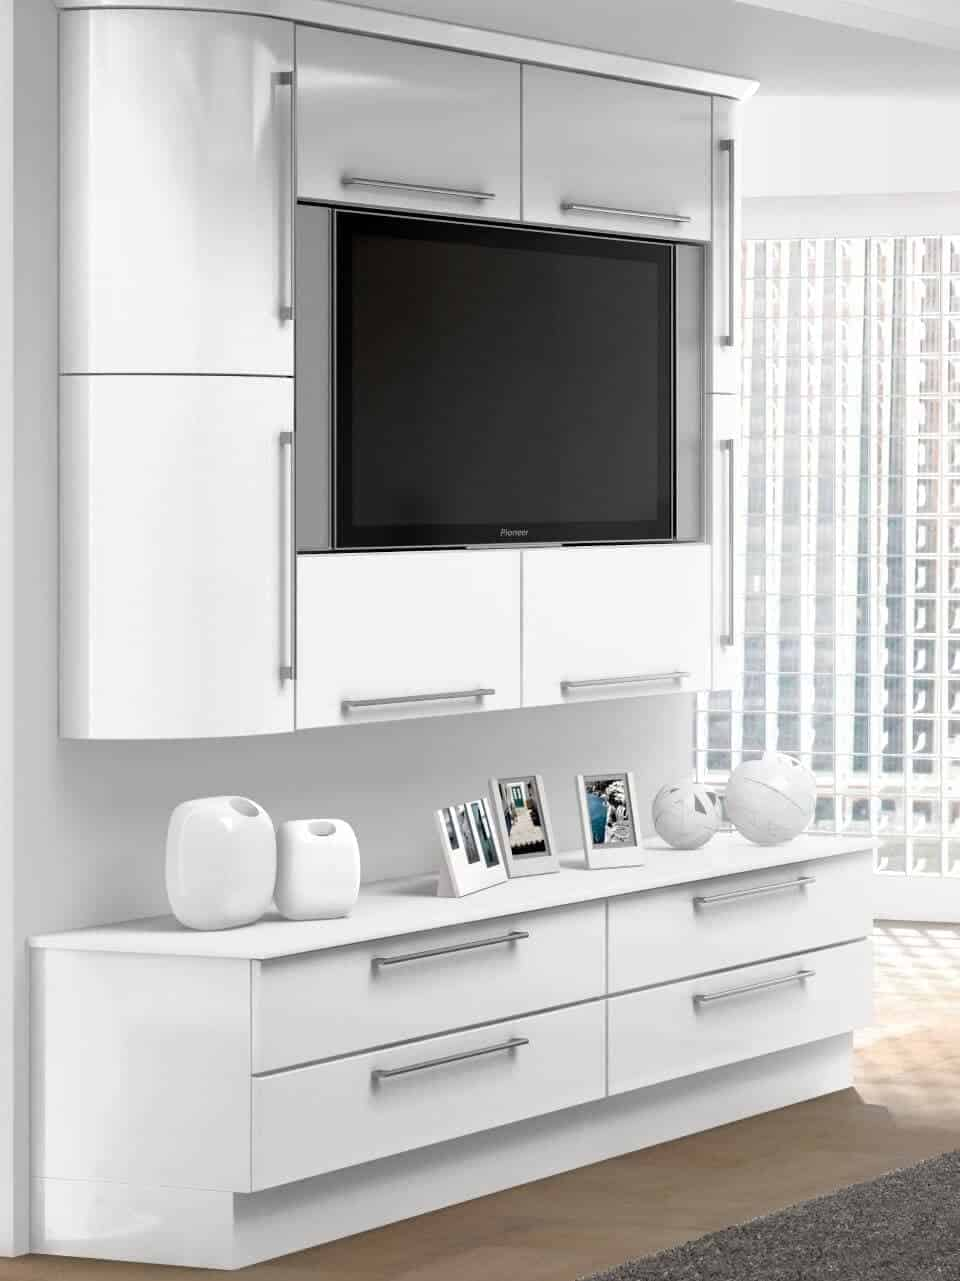 Goscote bedroom high gloss white